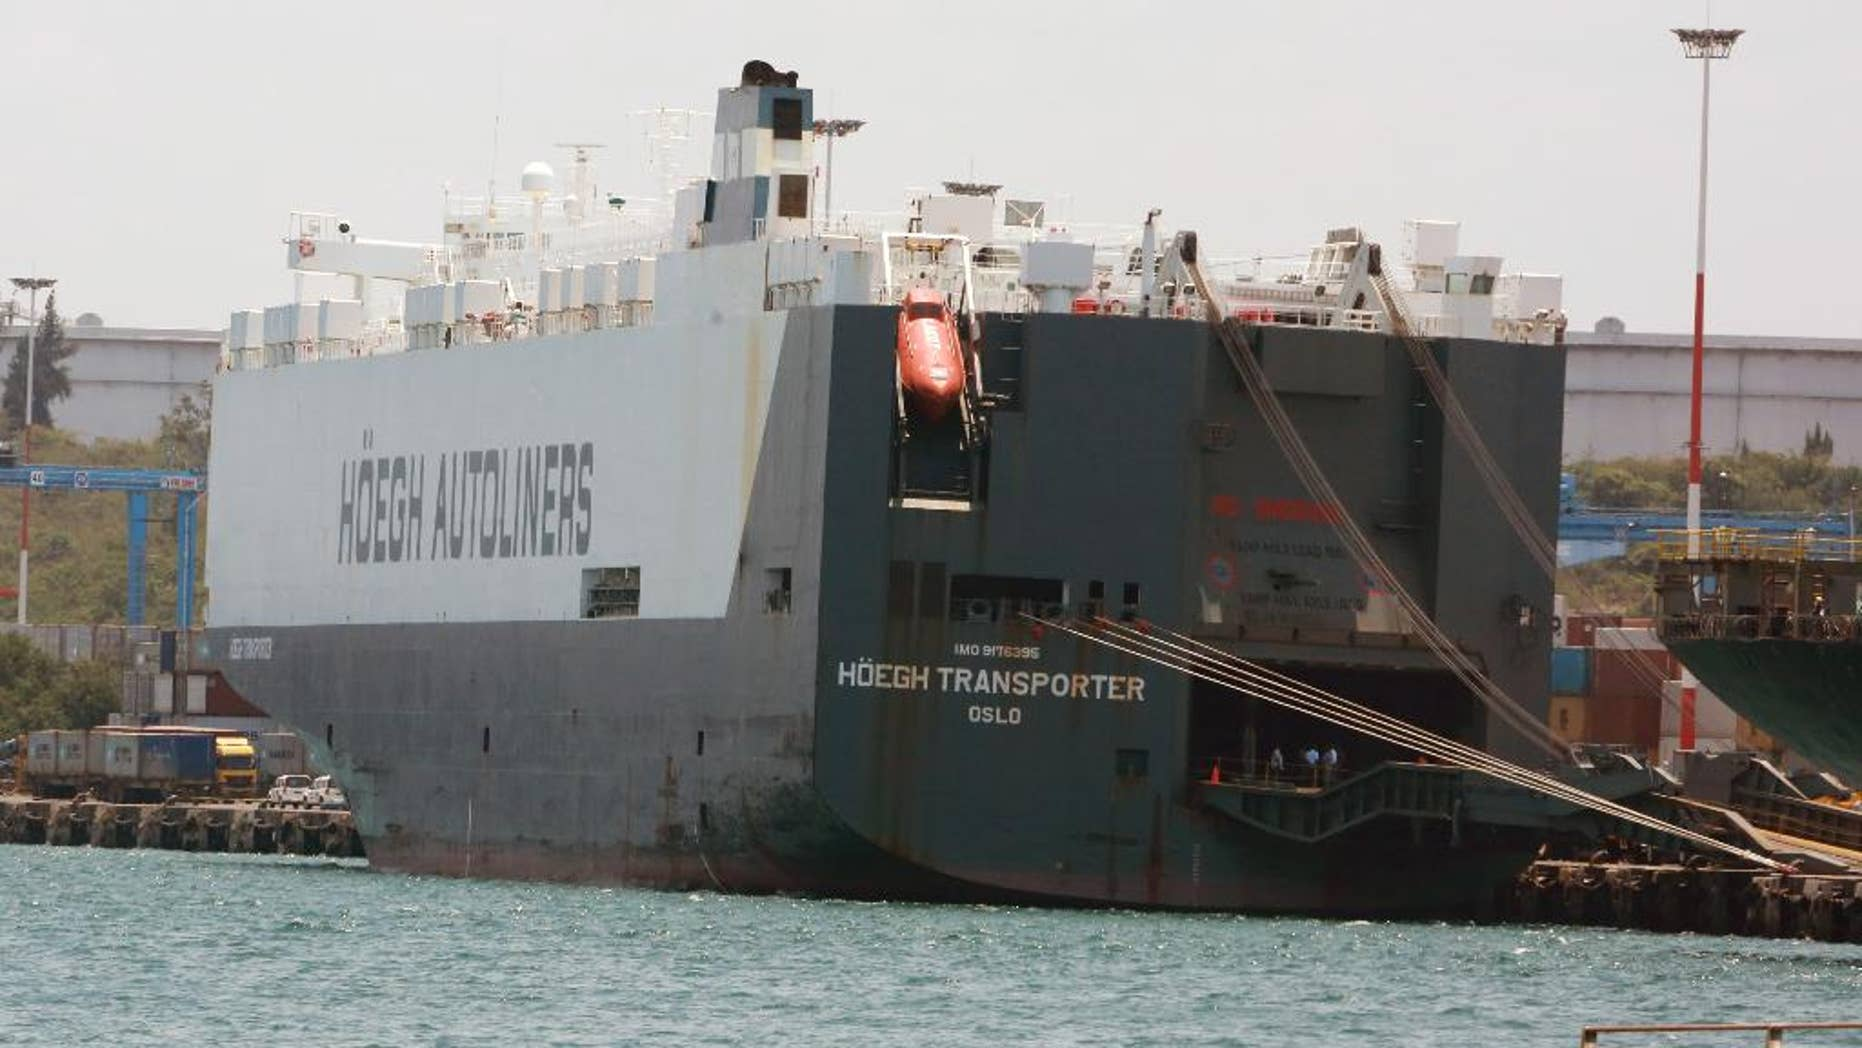 In this photo taken on Friday, Sept. 25, 2015, the Norwegian flagged Hoegh Autoliners cargo ship is photographed at the port of Mombasa, in Kenya. The Norwegian owner of a ship intercepted in Kenya says the vessel has been set free and allowed to its voyage to South Africa, West Africa and Mexico.  Hoegh Autoliners said in a statement seen Sunday that, after a delay of more than a week, no crew have been arrested. No illegal drugs were found, it added.  (AP Photo)